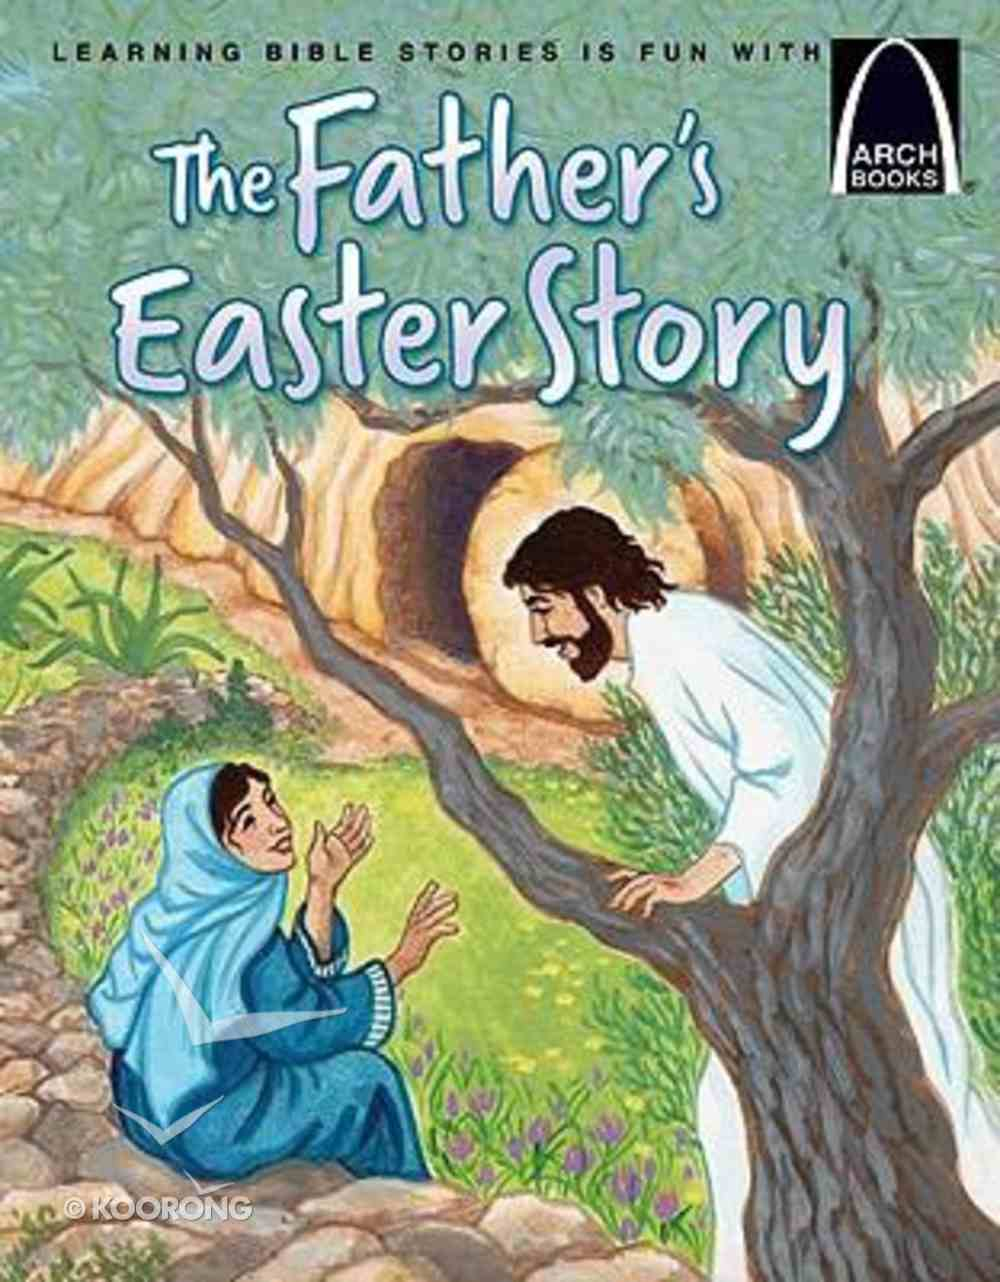 The Father's Easter Story (Arch Books Series) Paperback